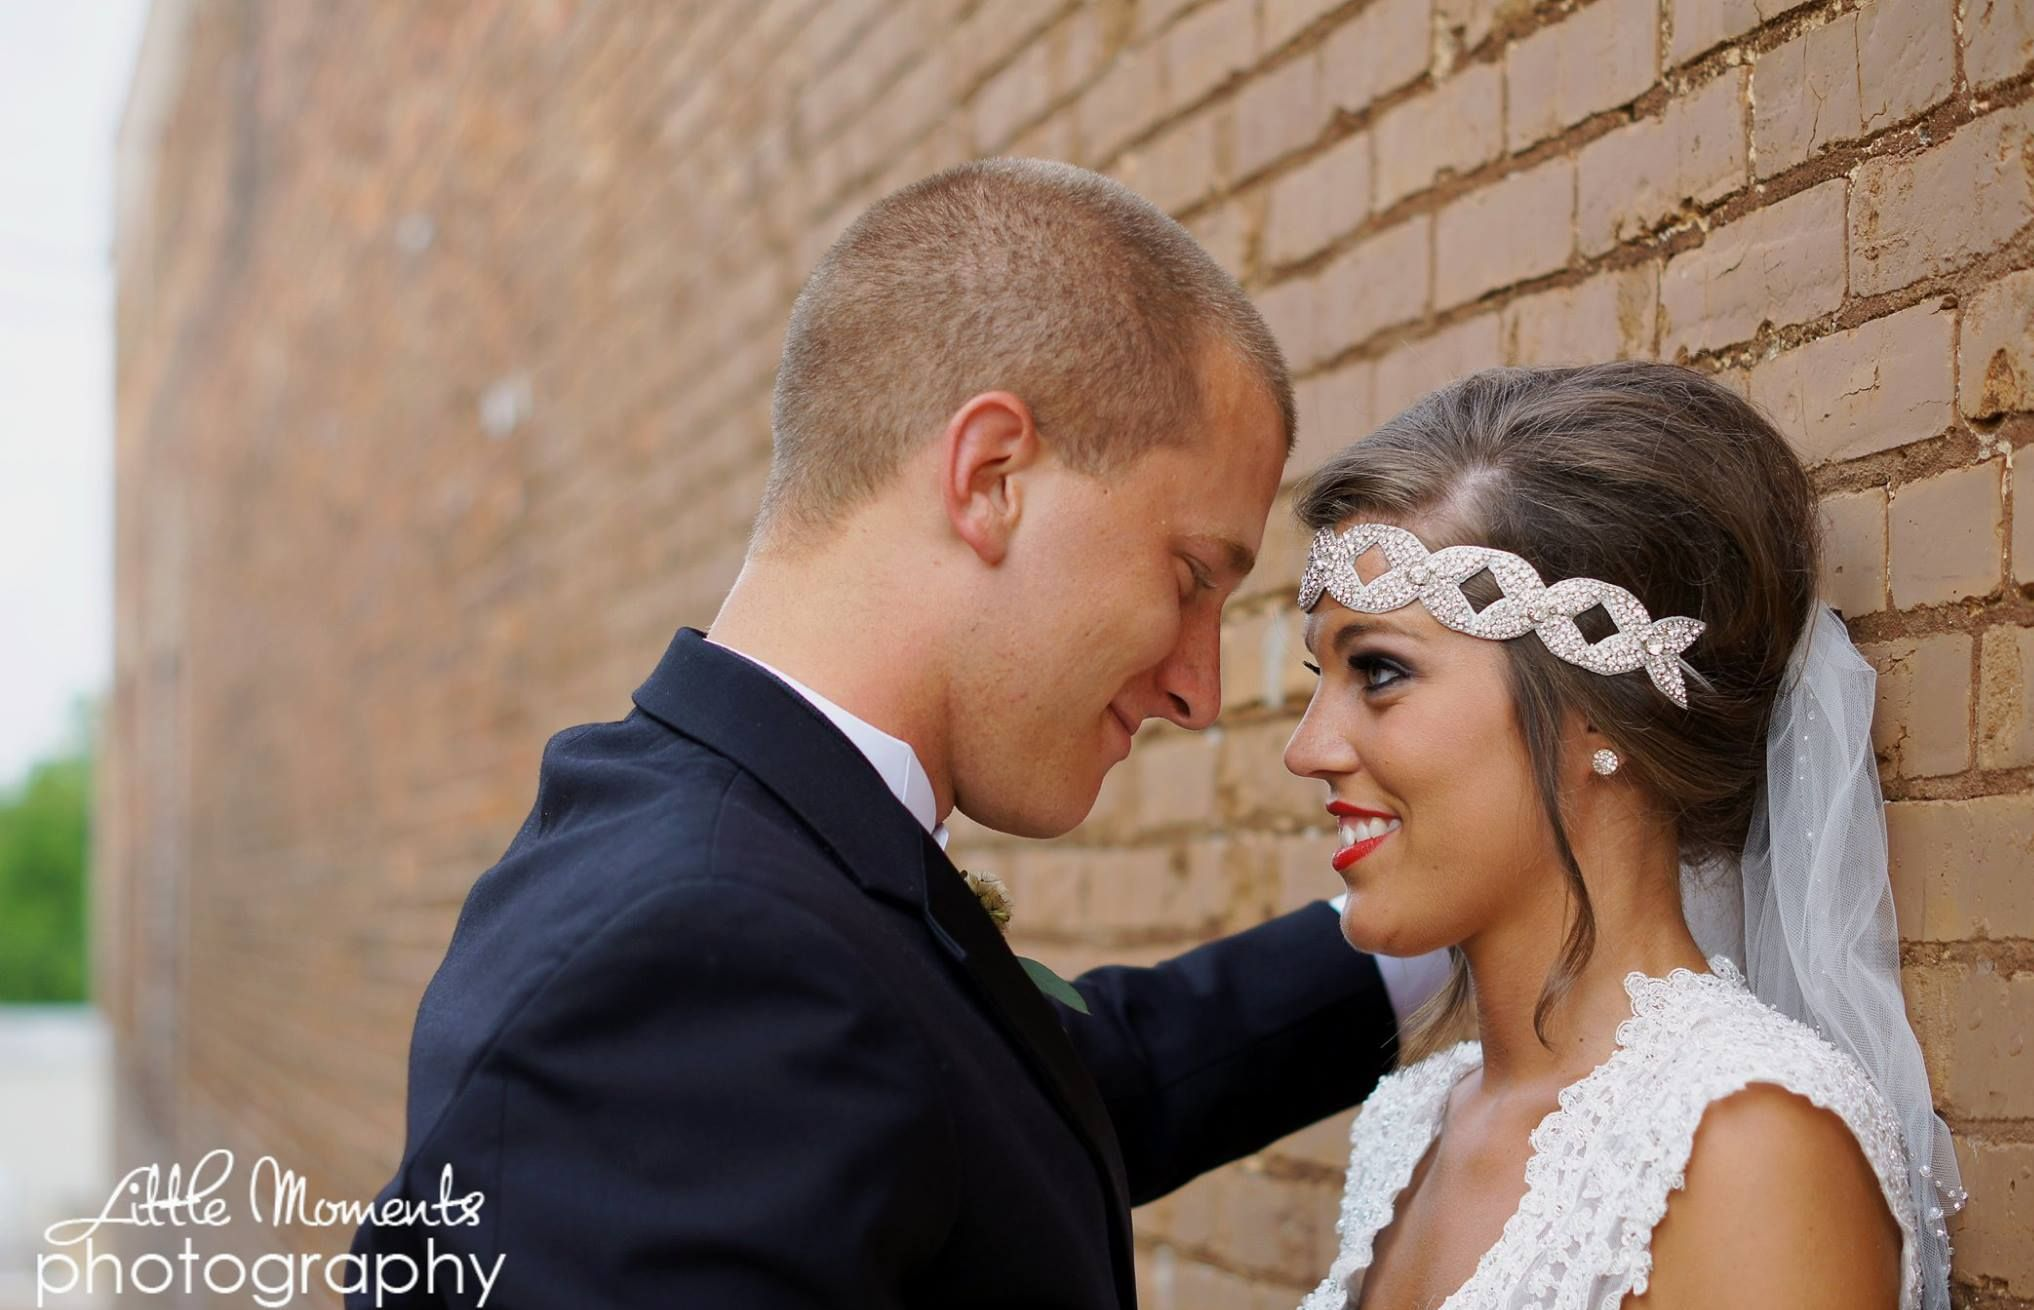 Weddings - Little Moments Photography facebook.com/littlemomentsphotosms - North Mississippi Photographer